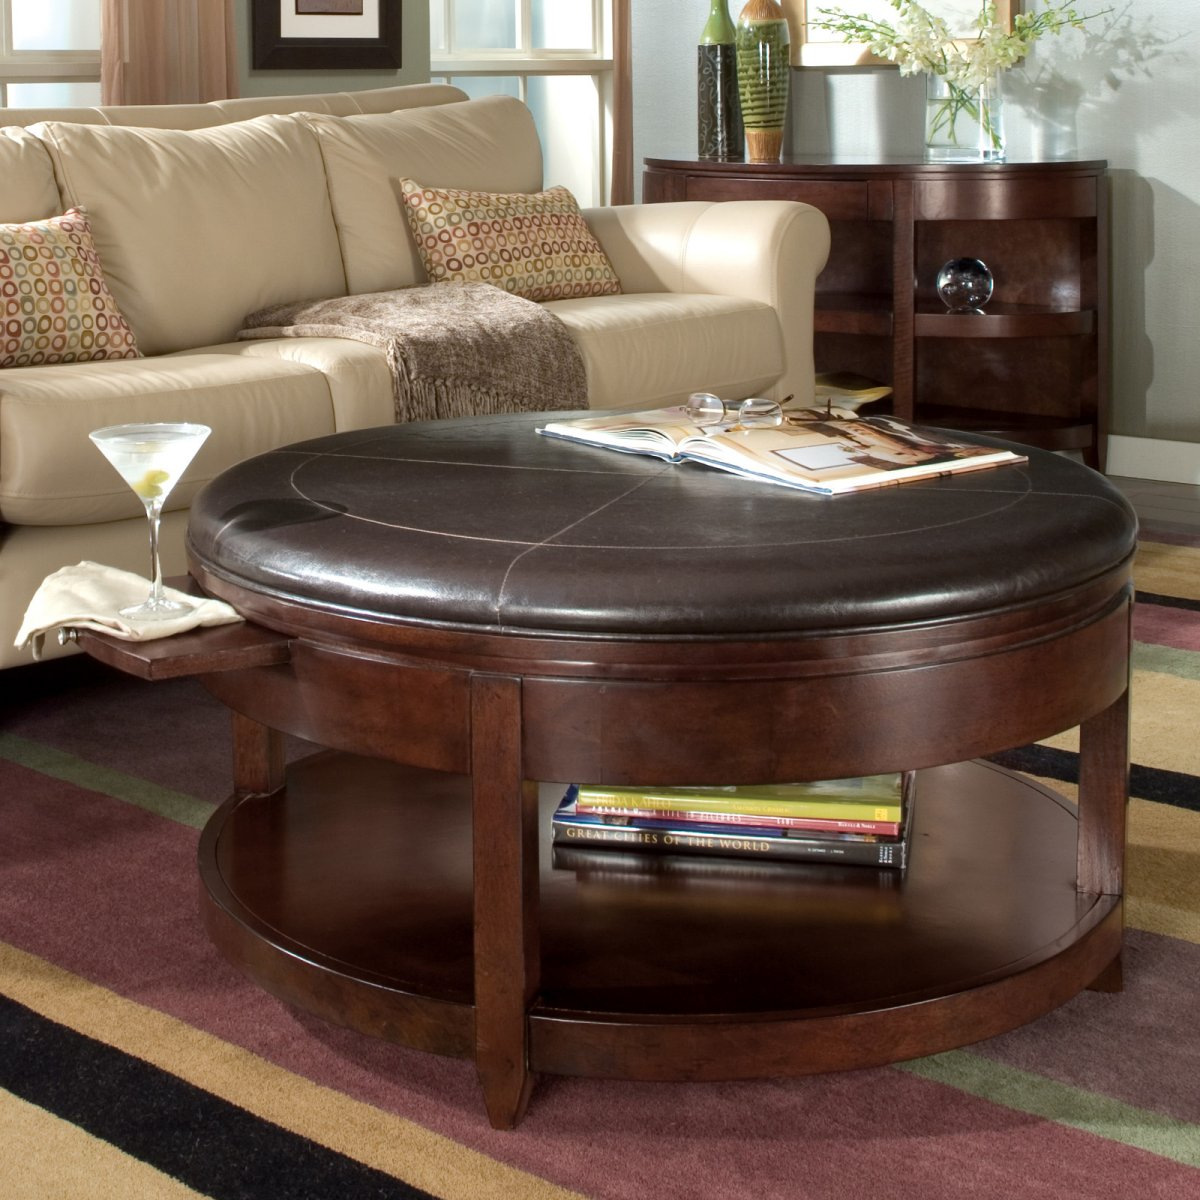 Brown Round Leather Ottoman Coffee Table Round Coffee Table Ottomans Round Leather Storage Ottoman (View 2 of 10)